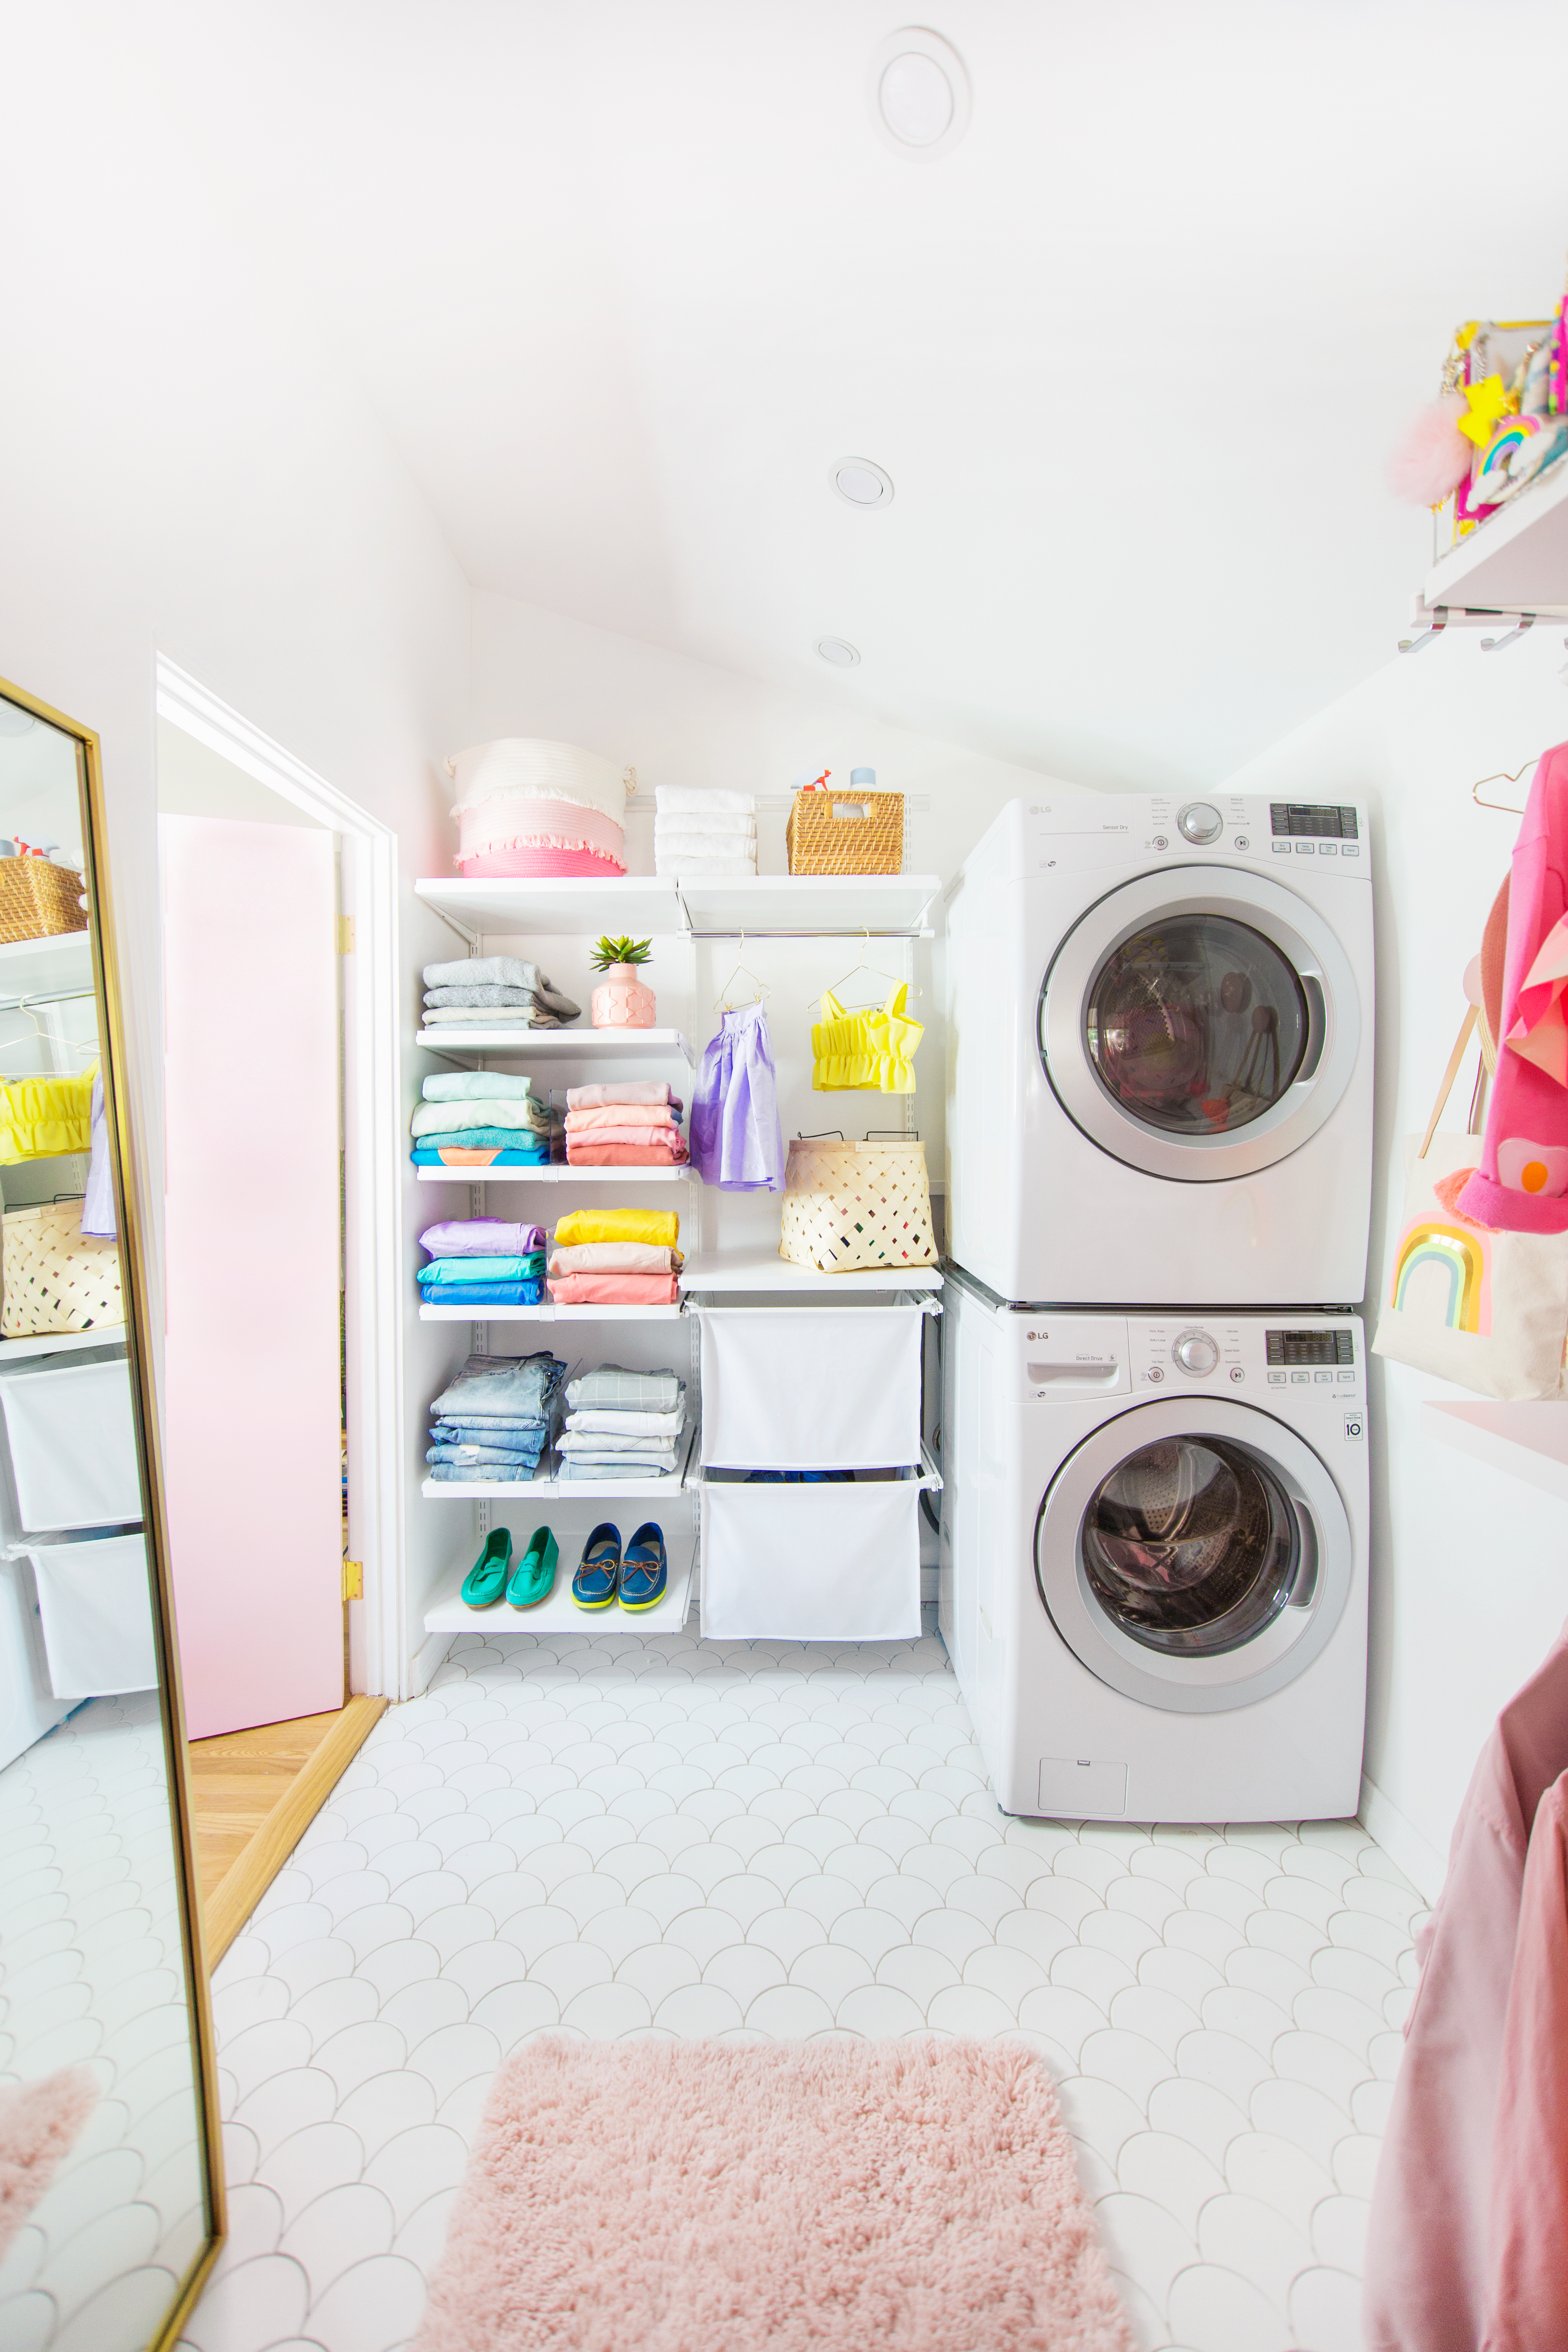 2018_Q1_image_residential_influencer_StudioDIY_closet_floor_tile_ogee_drop_calcite_with_laundry.jpg?mtime=20180610102727#asset:265469